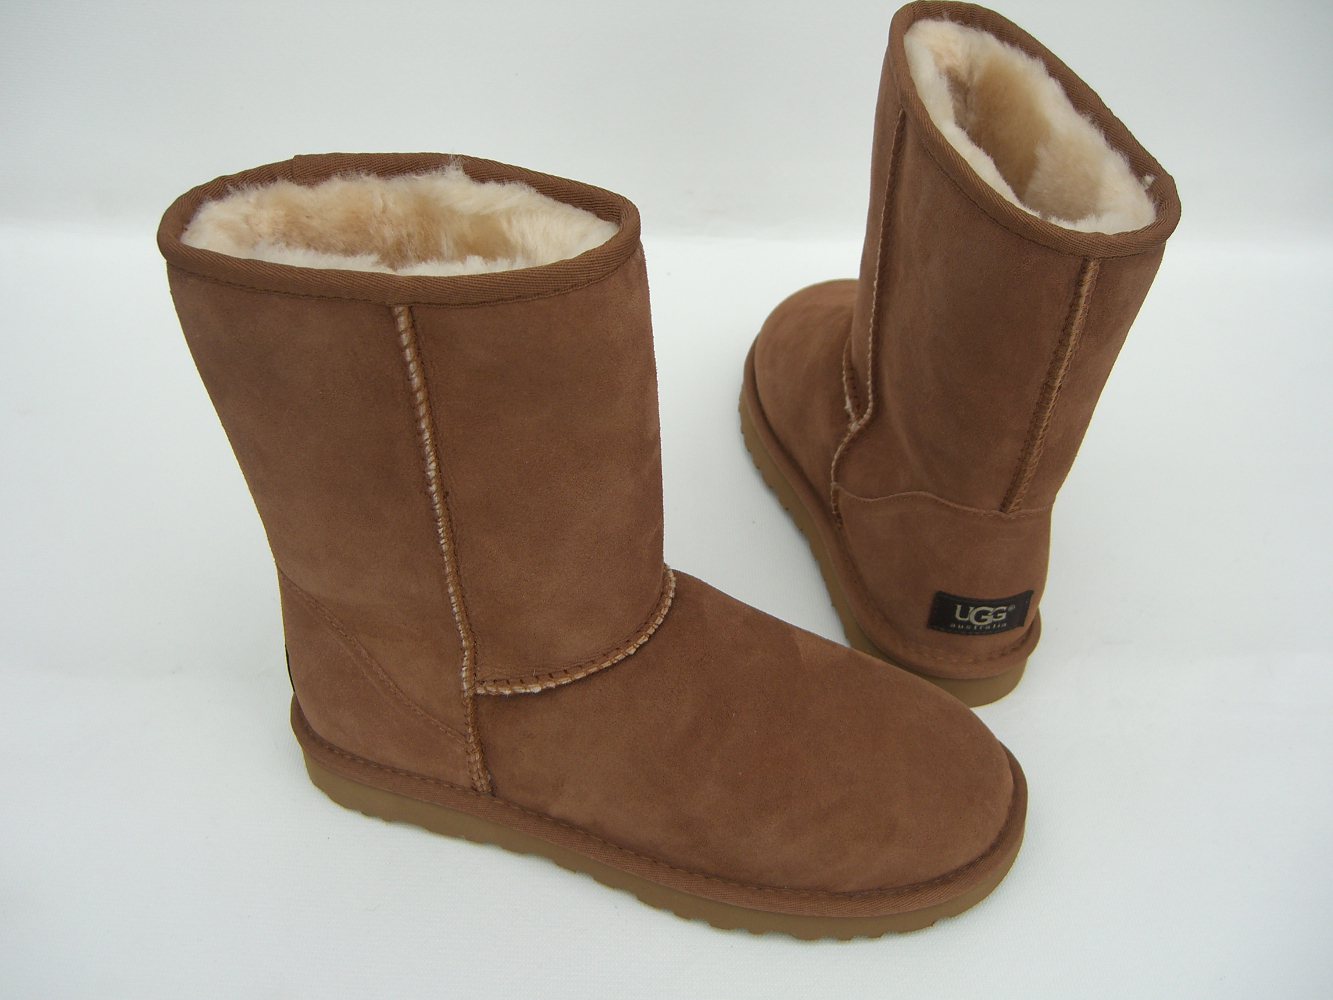 ugg boots made in australia or china